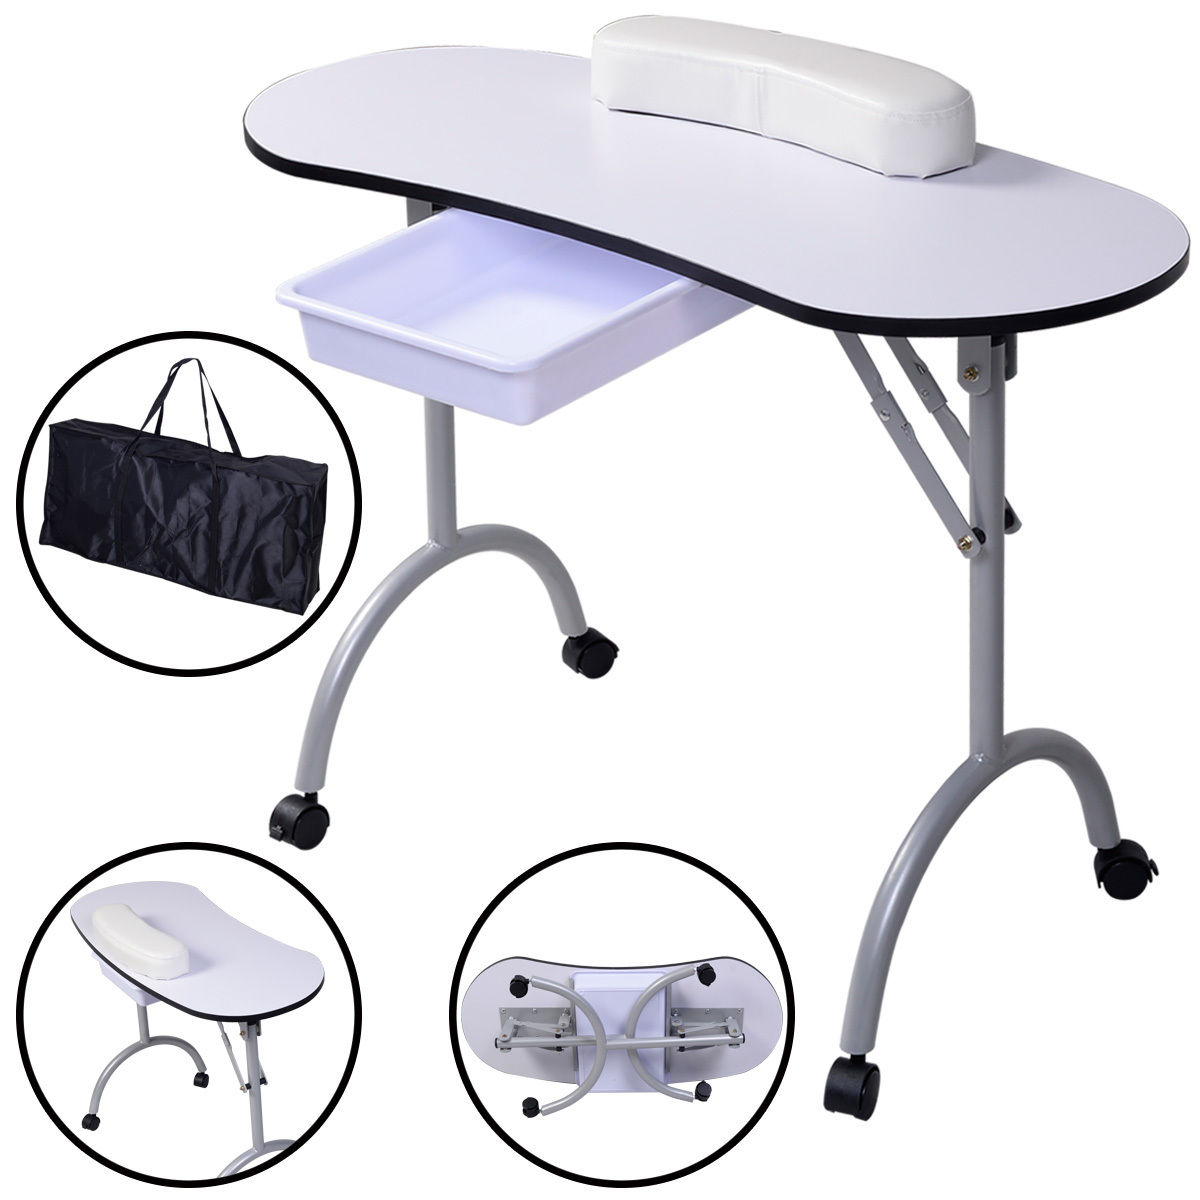 Costway Portable Manicure Nail Table Station Desk Spa Beauty Salon Equipment White